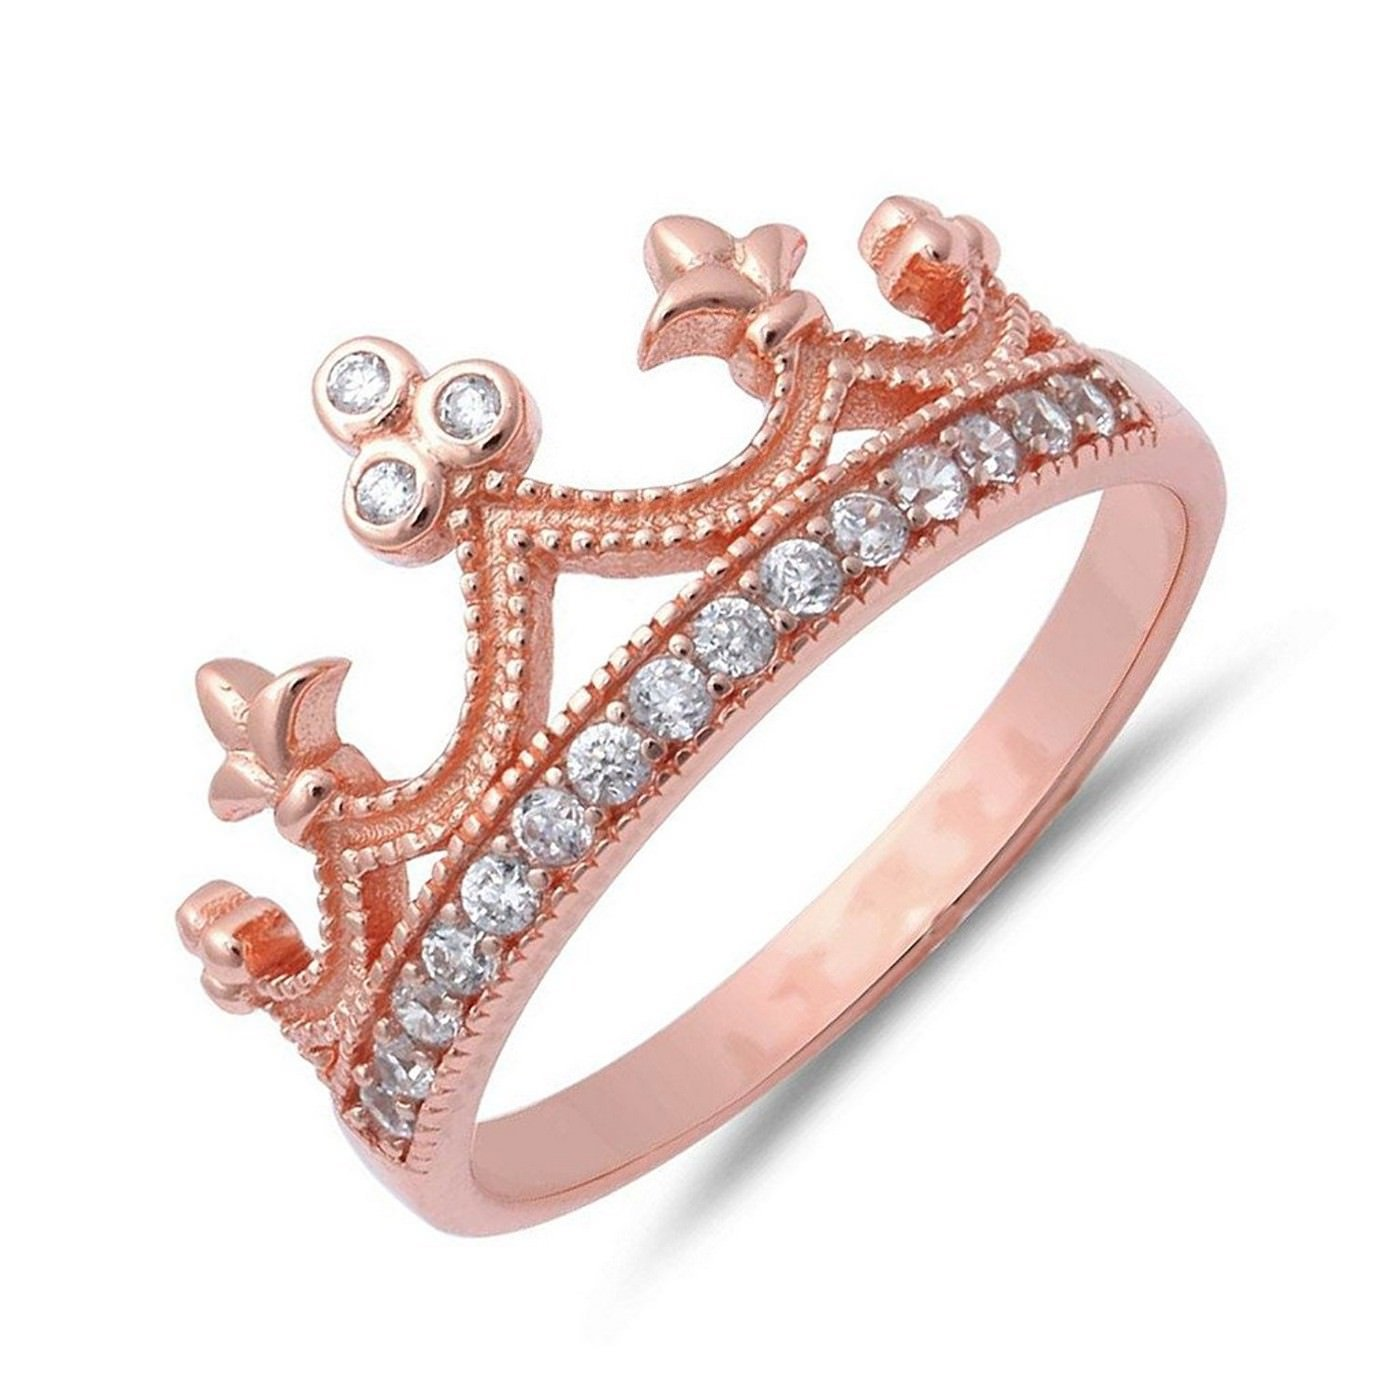 Wedding Season Import Crown Ring .925 Sterling Silver Princess Tiara Unique Womens Girls Band Color Option Size 12 - Rose Gold